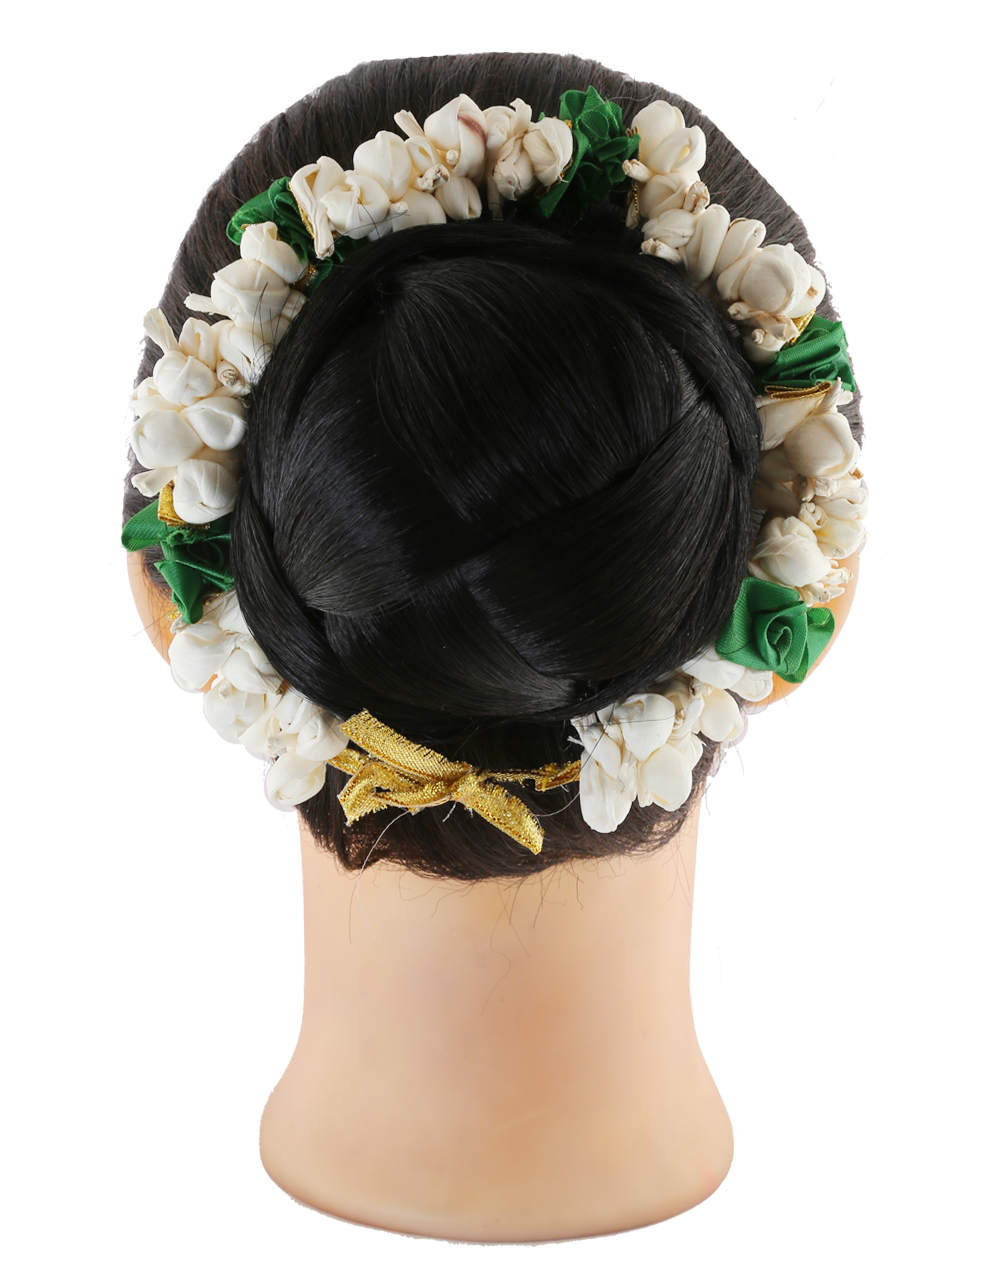 Green Colour Fashionable Hair Accessories Jewellery